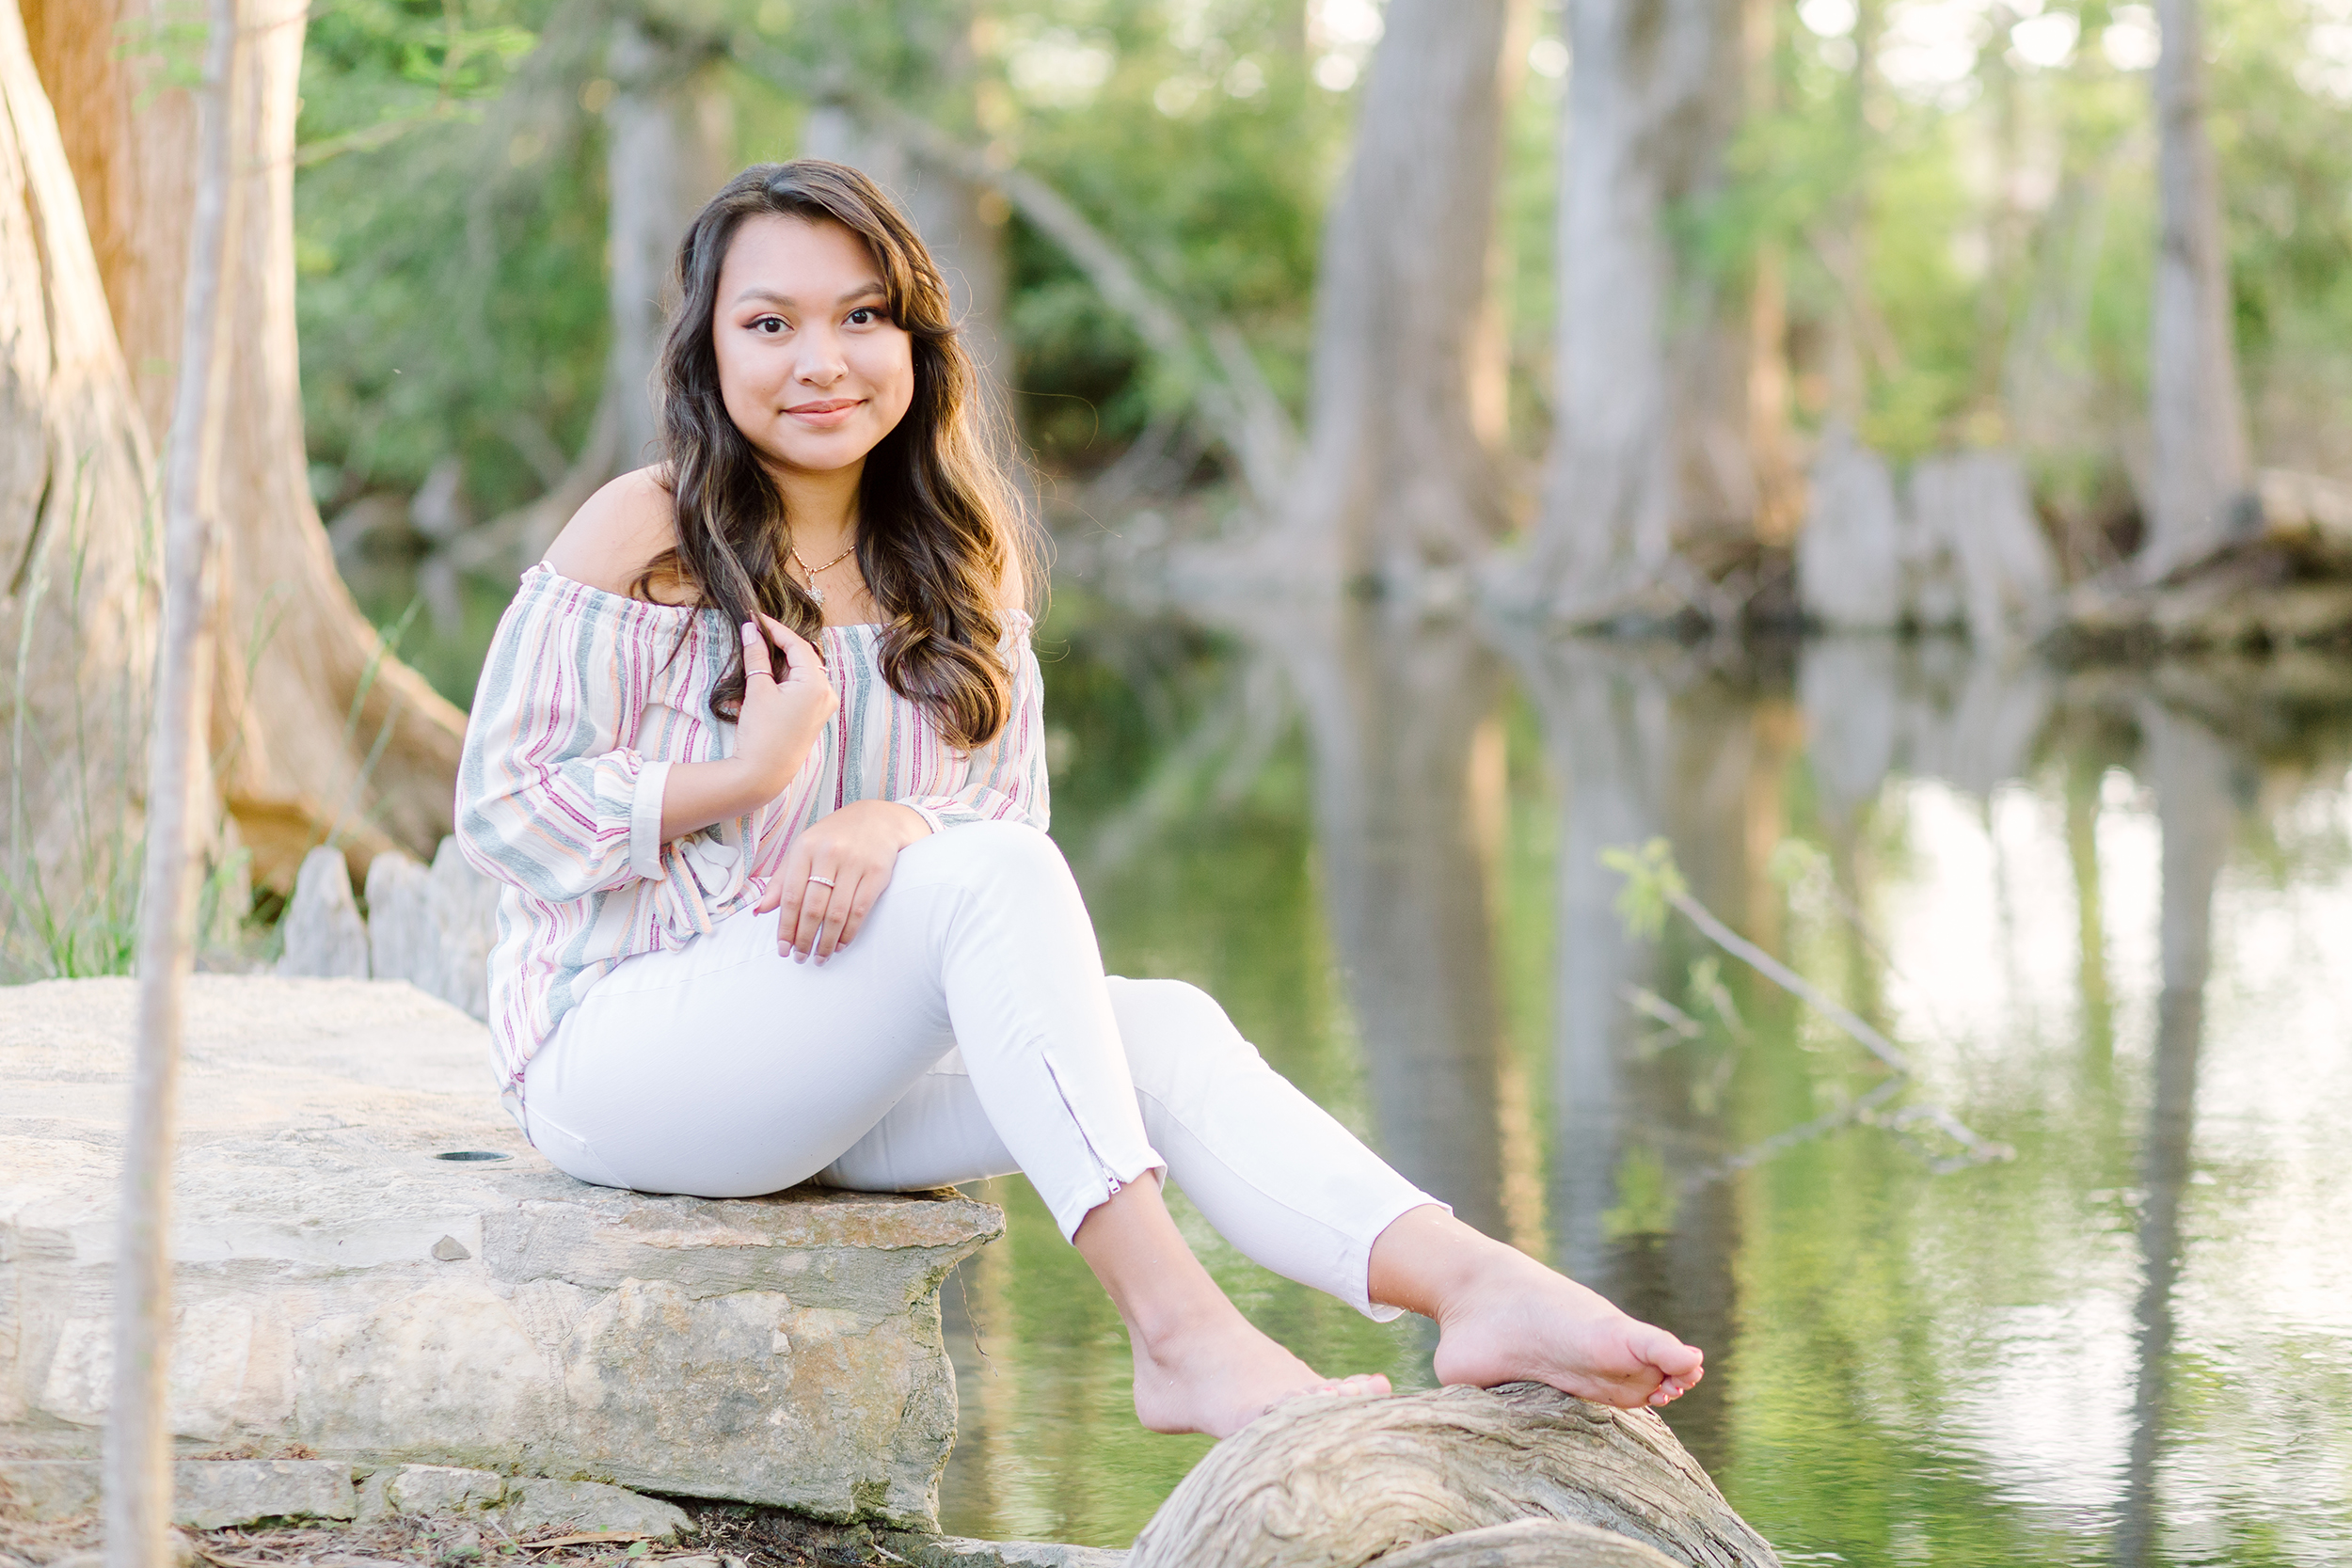 Austin_Senior_Portraits_Kimberly_Brooke_Photographic_005.jpg